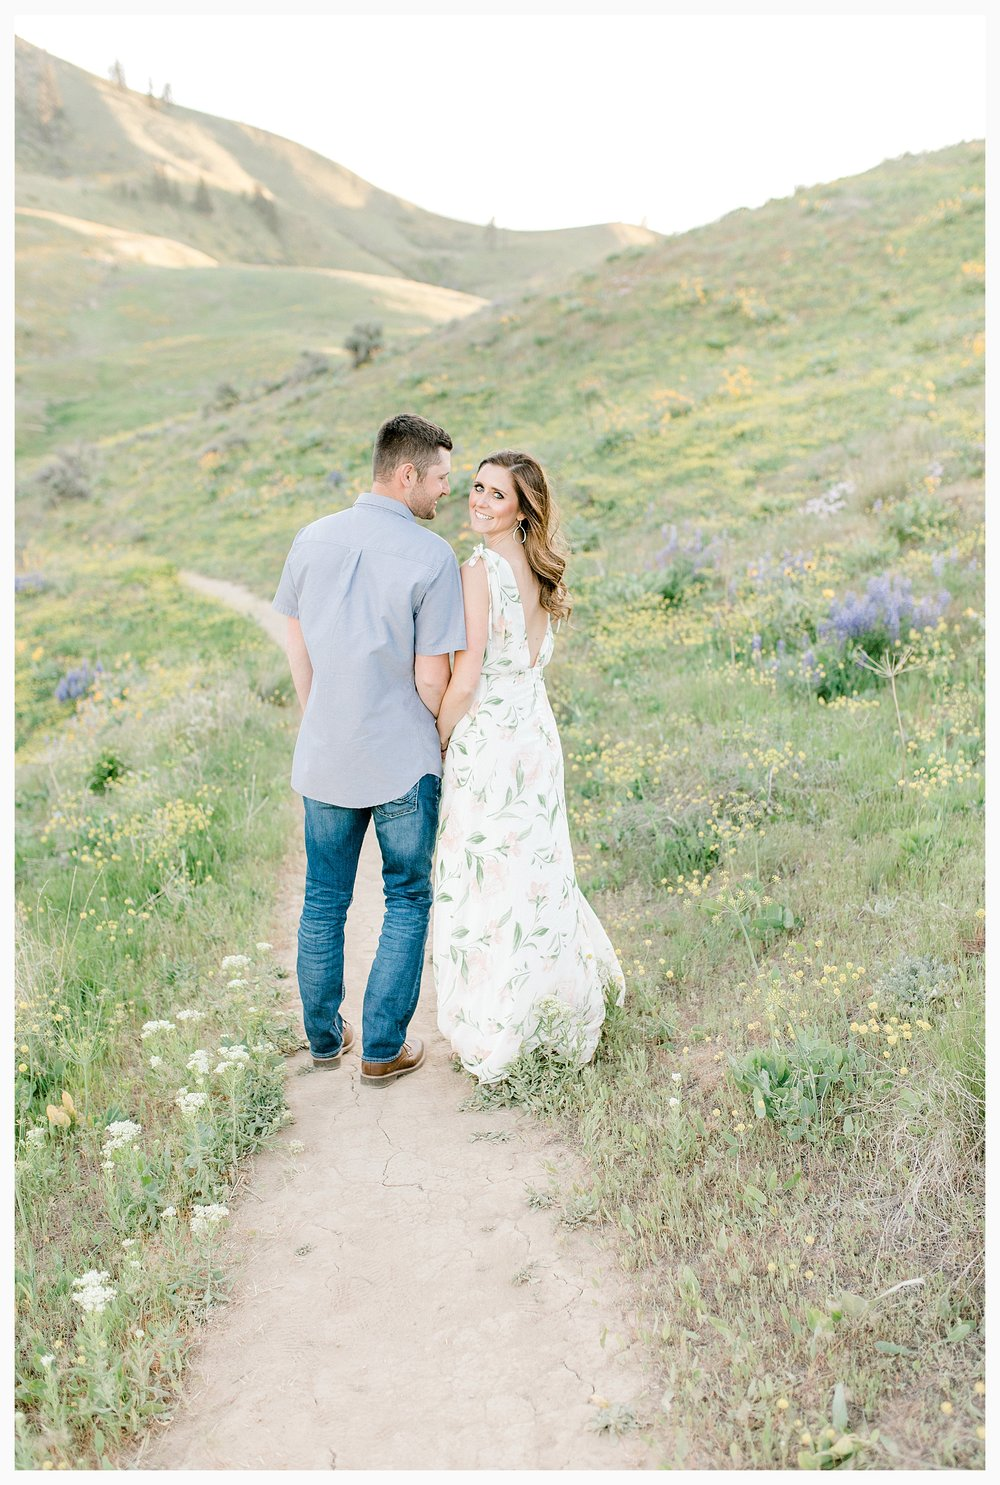 Engagement session amongst the wildflowers in Wenatchee, Washington | Engagement Session Outfit Inspiration for Wedding Photography with Emma Rose Company | Light and Airy PNW Photographer, Seattle Bride_0014.jpg